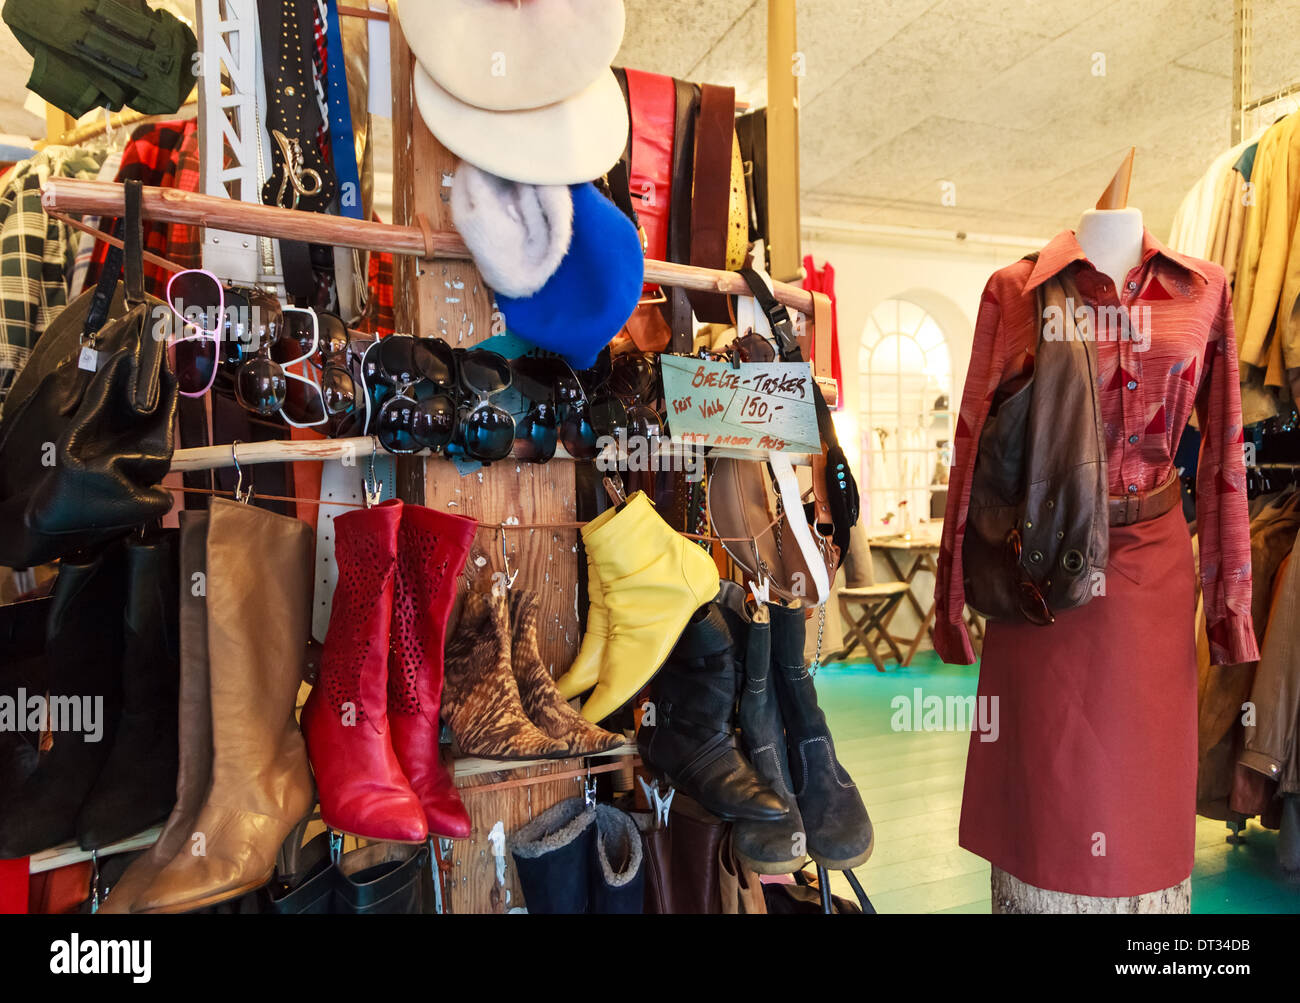 Aarhus. A used or vintage clothing shop or store - Stock Image